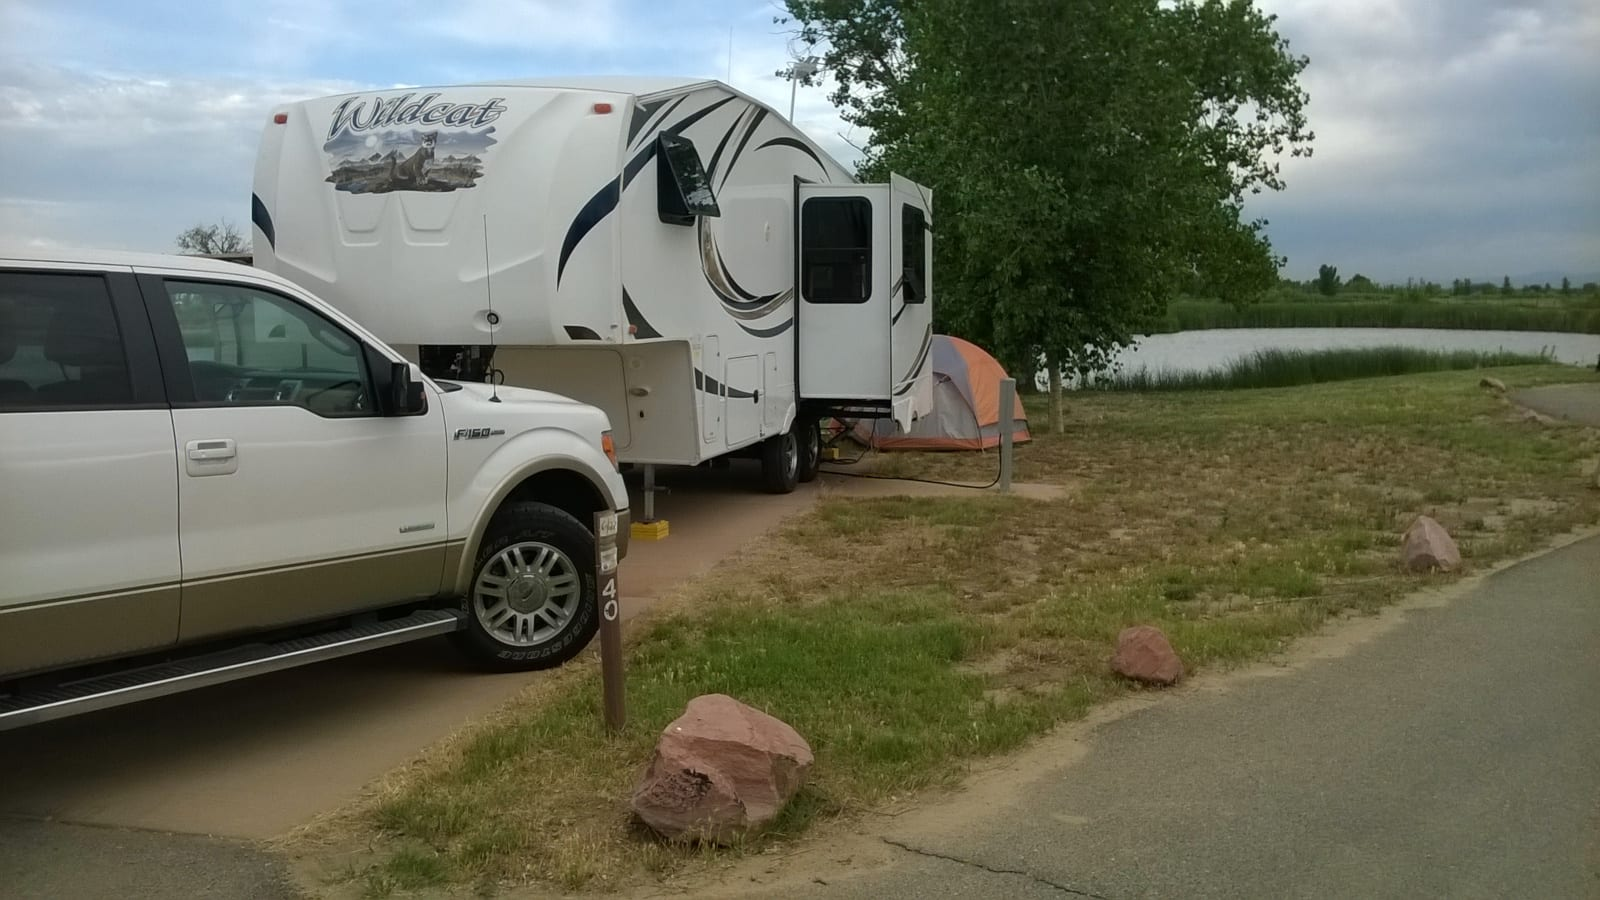 St Vrain State Park Firestone CO RV Campground